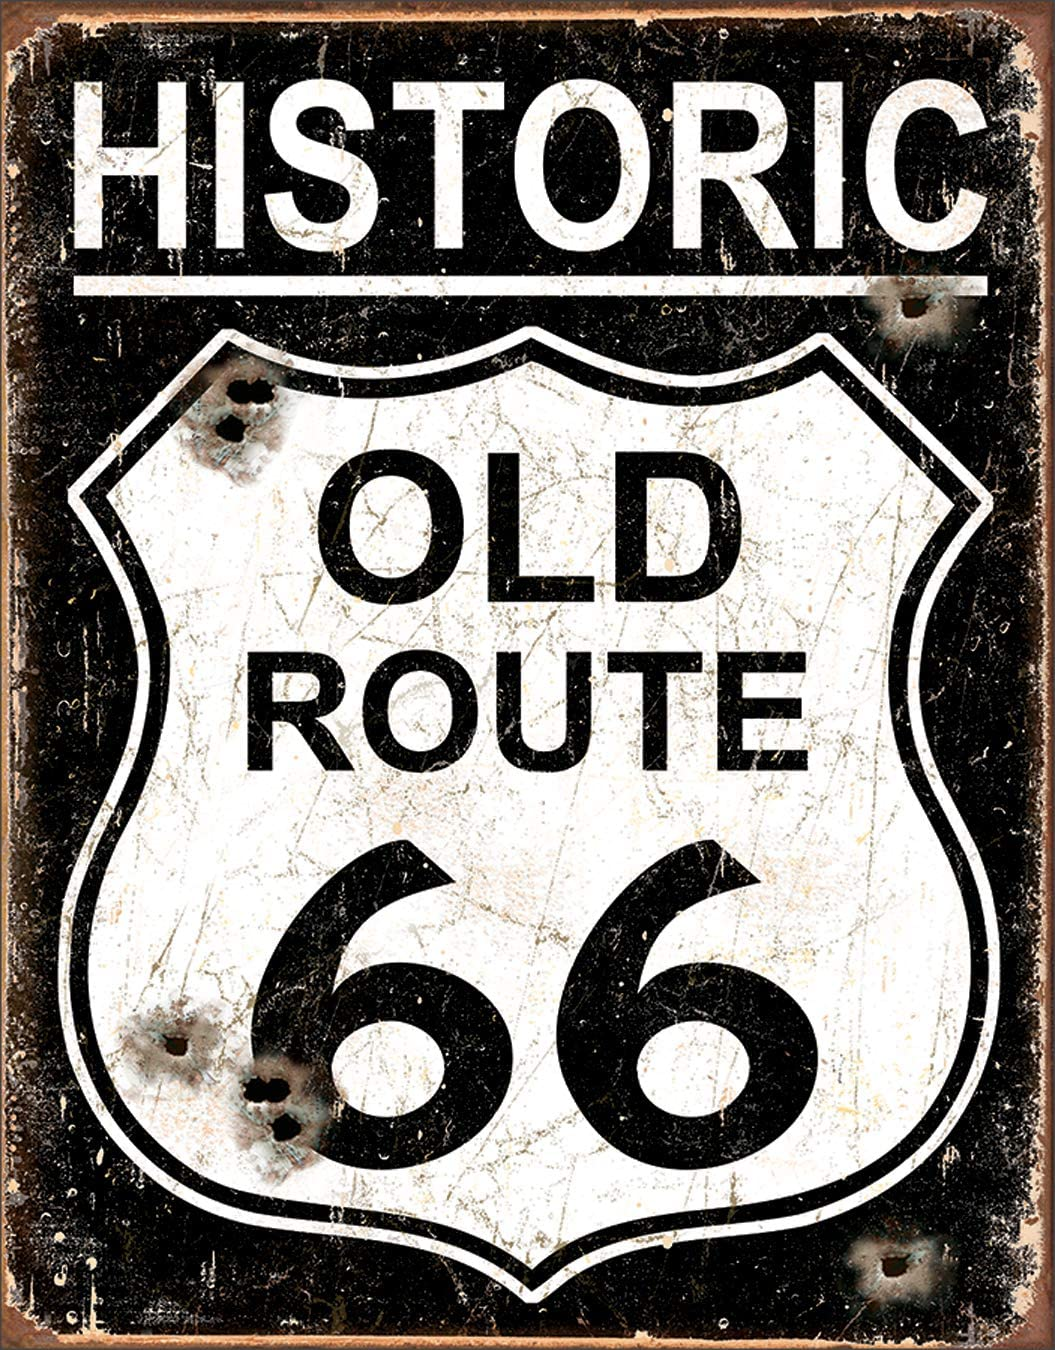 "Desperate Enterprises Historic Old Route 66 - Weathered Tin Sign, 12.5"" W x 16"" H"